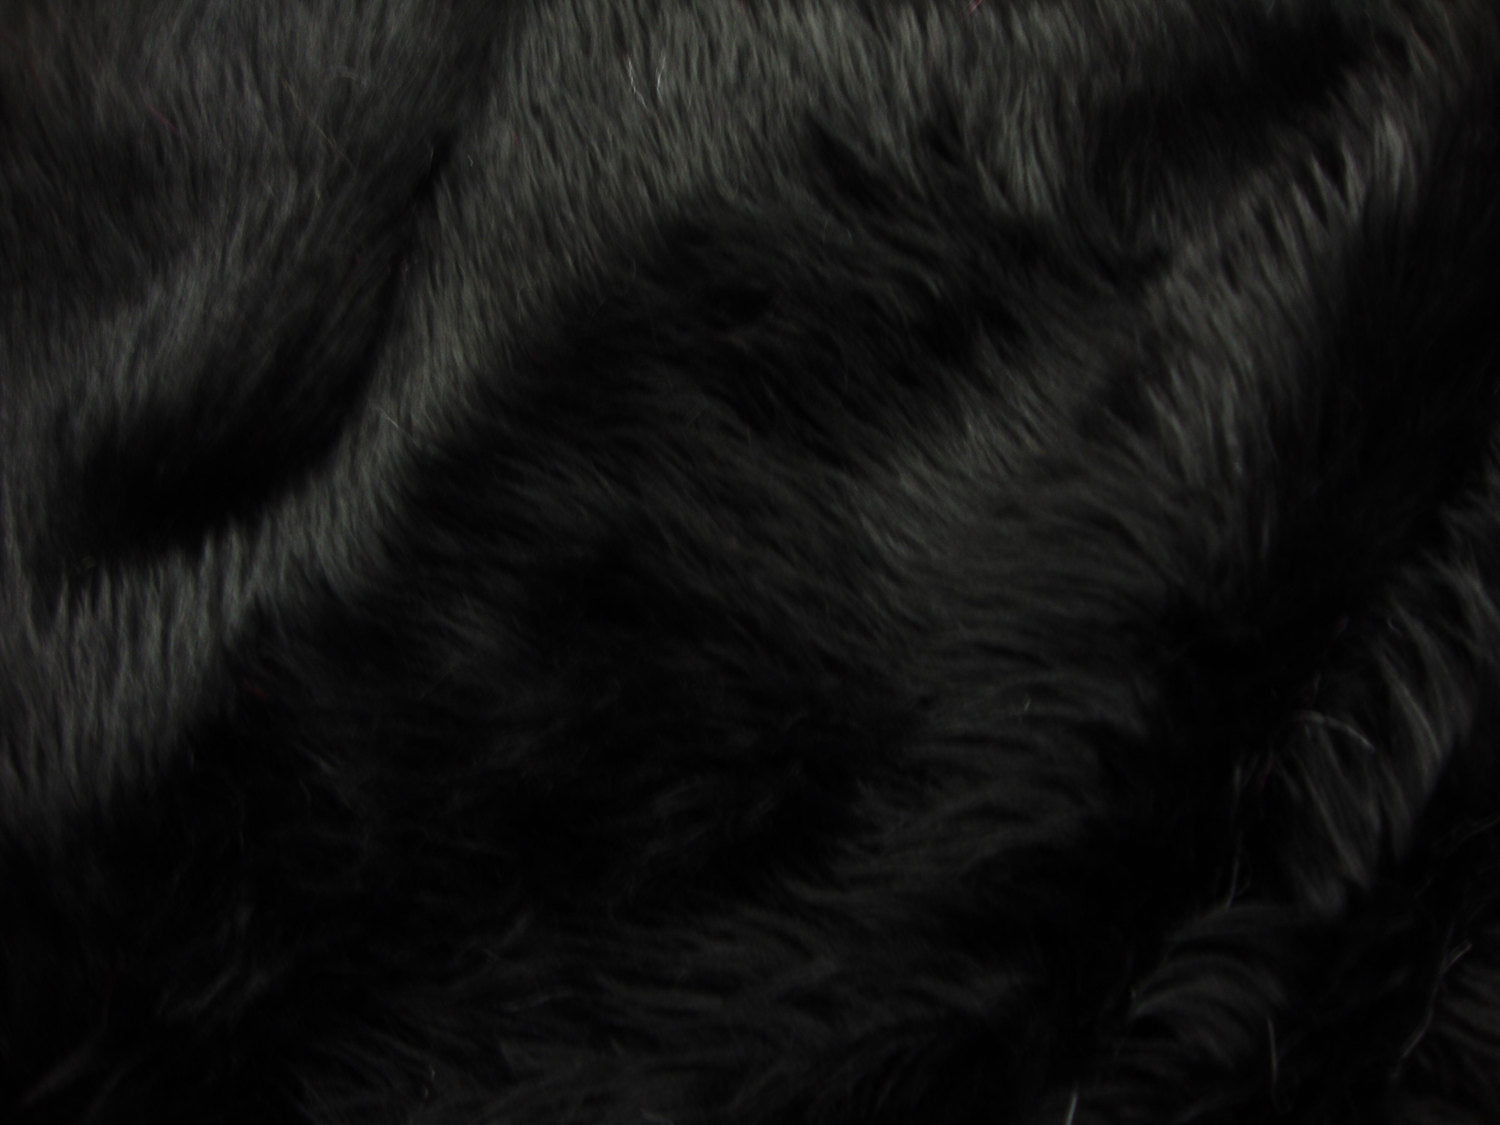 Black Shaggy Plush Faux Fur Rectangular 8'x10' Area Rug || Home Decor